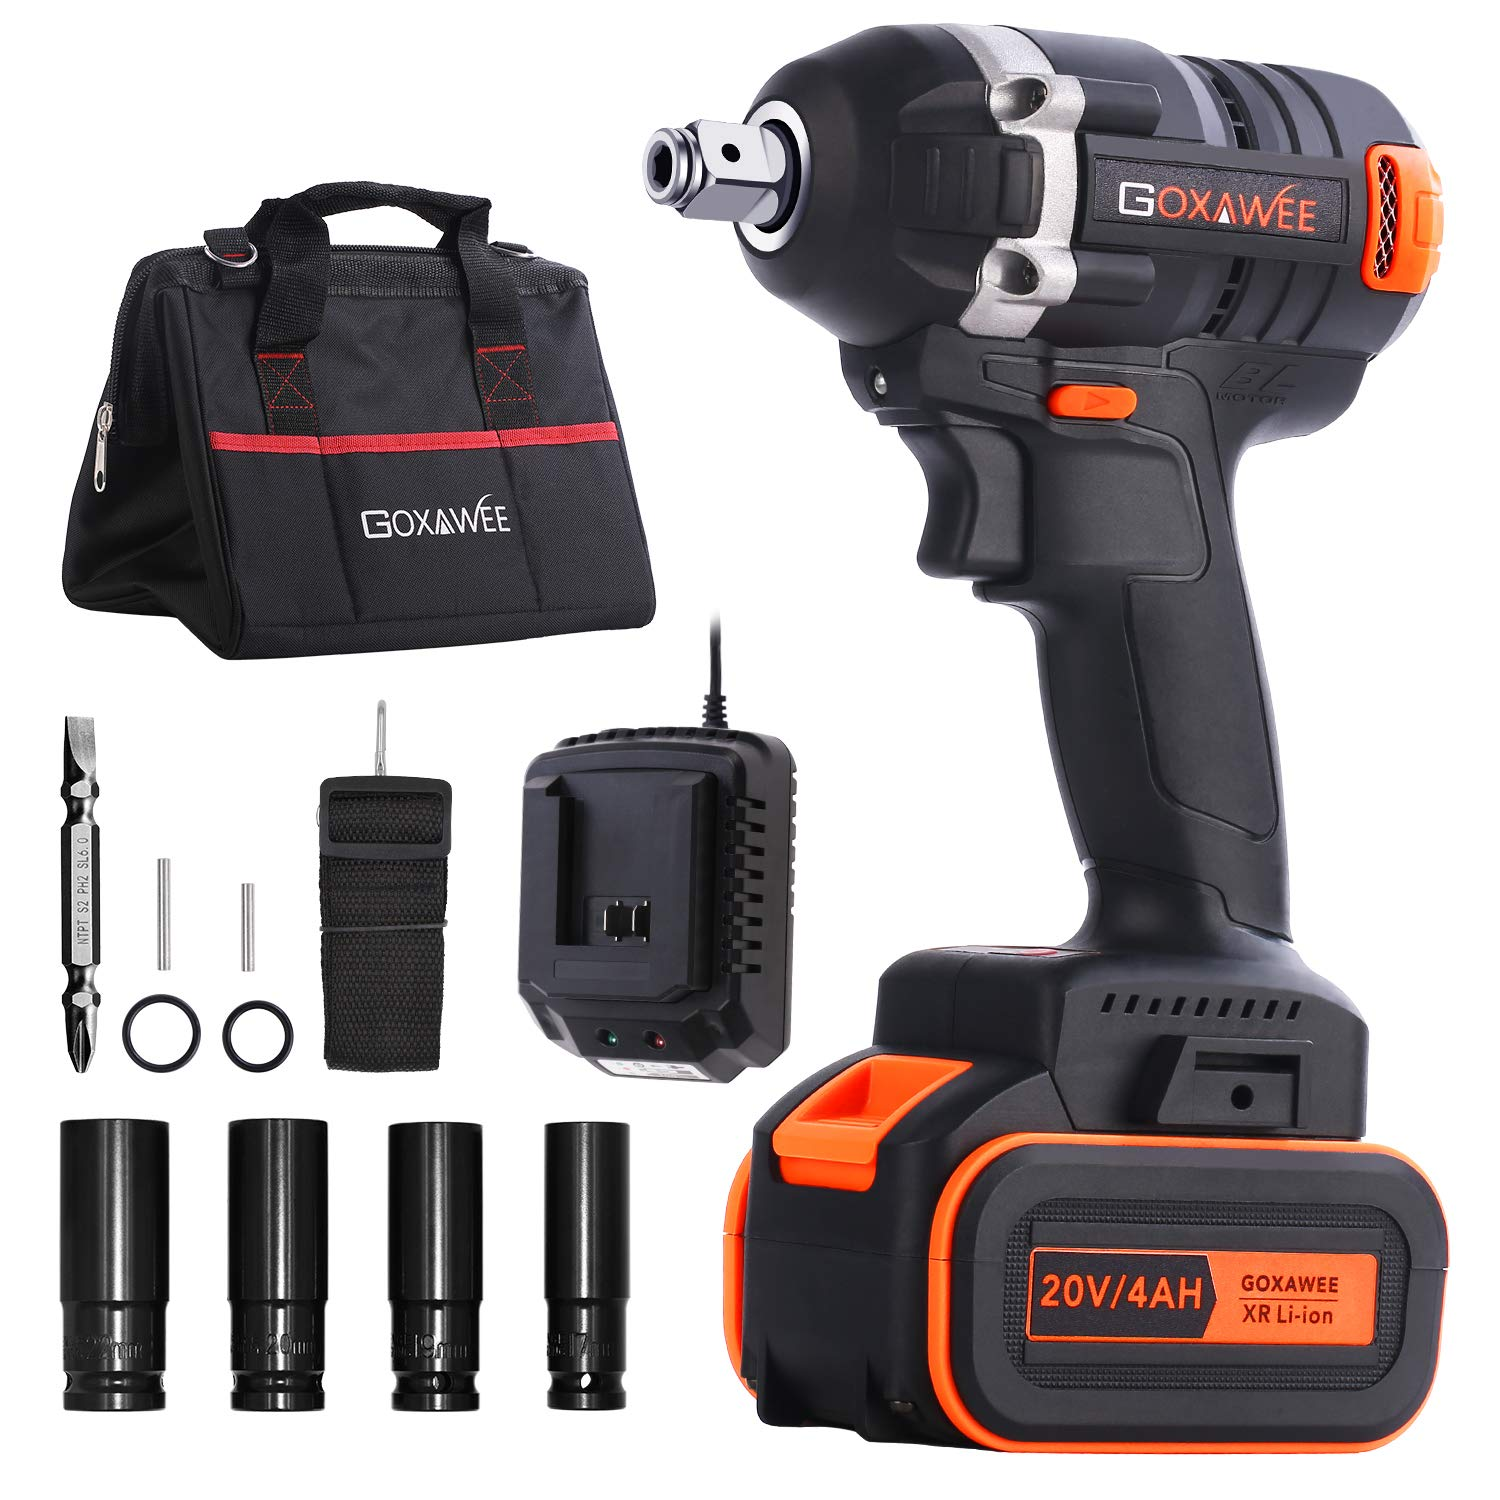 Cordless Impact Wrench 1/2 Inch - GOXAWEE 20V Electric Impact Gun (4Ah Battery, 300Nm, Brushless, 1/2 & 1/4 Inch Quick Chuck, 2-Speed, Tool Bag) - High Torque Impact Driver Kit for Home & DIY Project